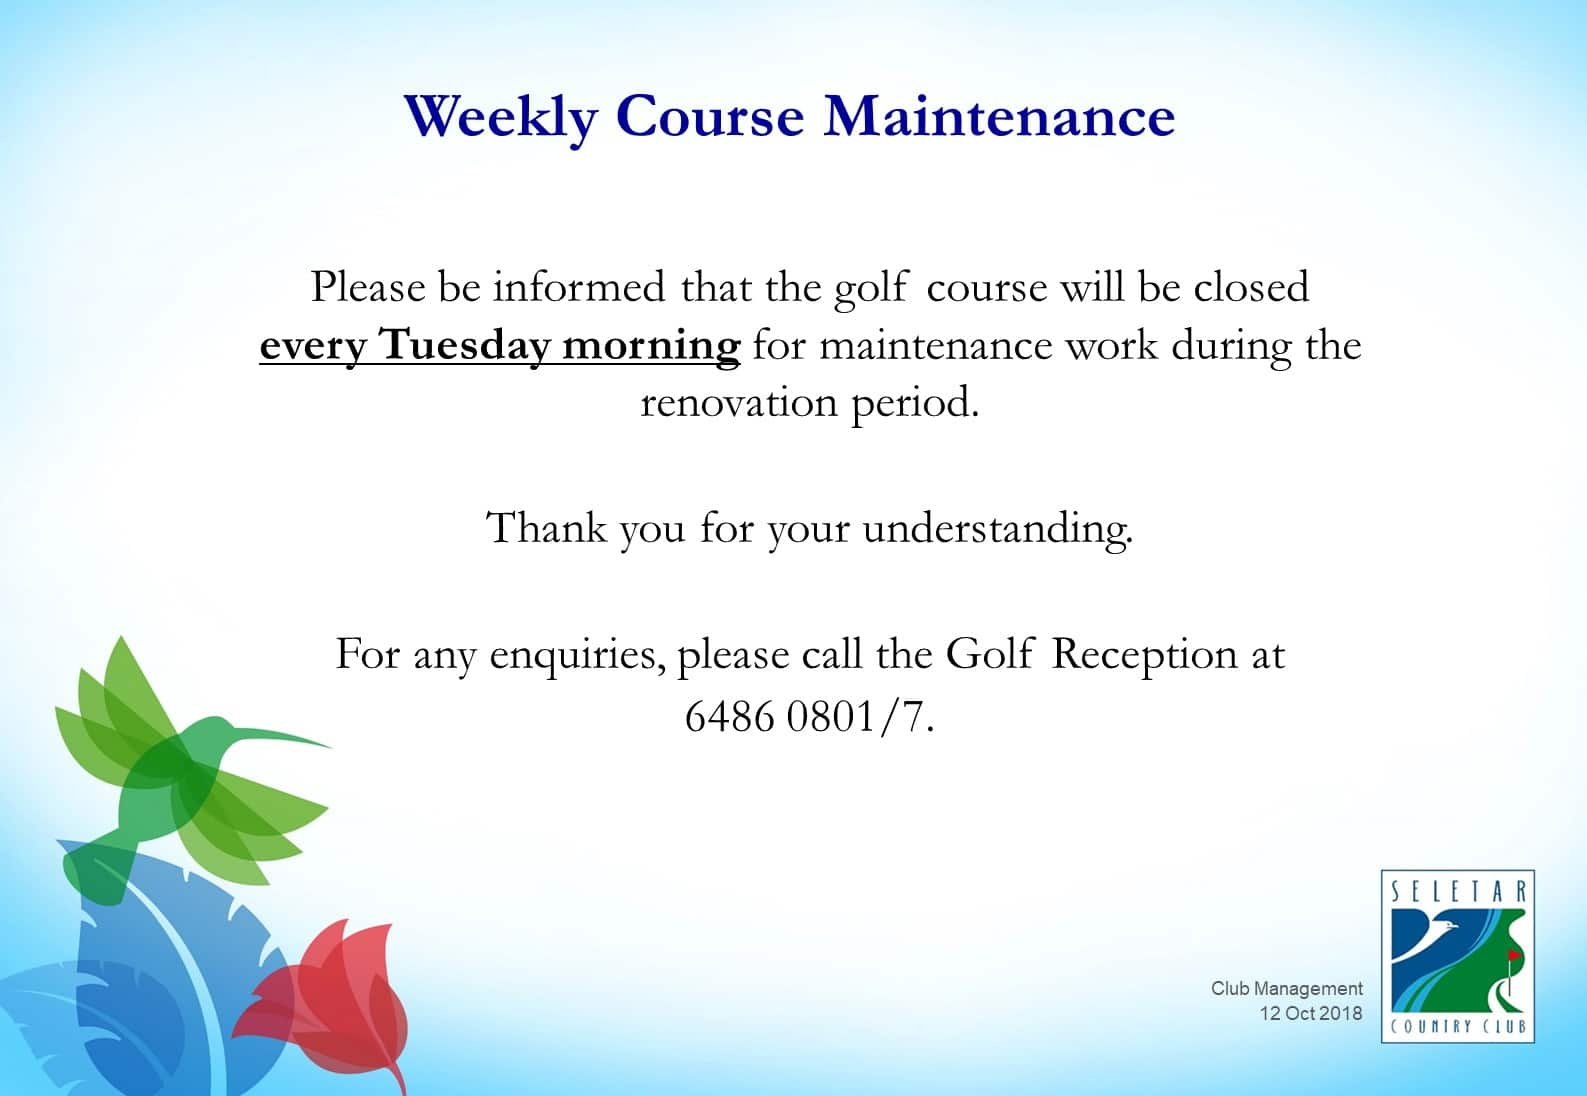 Weekly course maintenance during renov